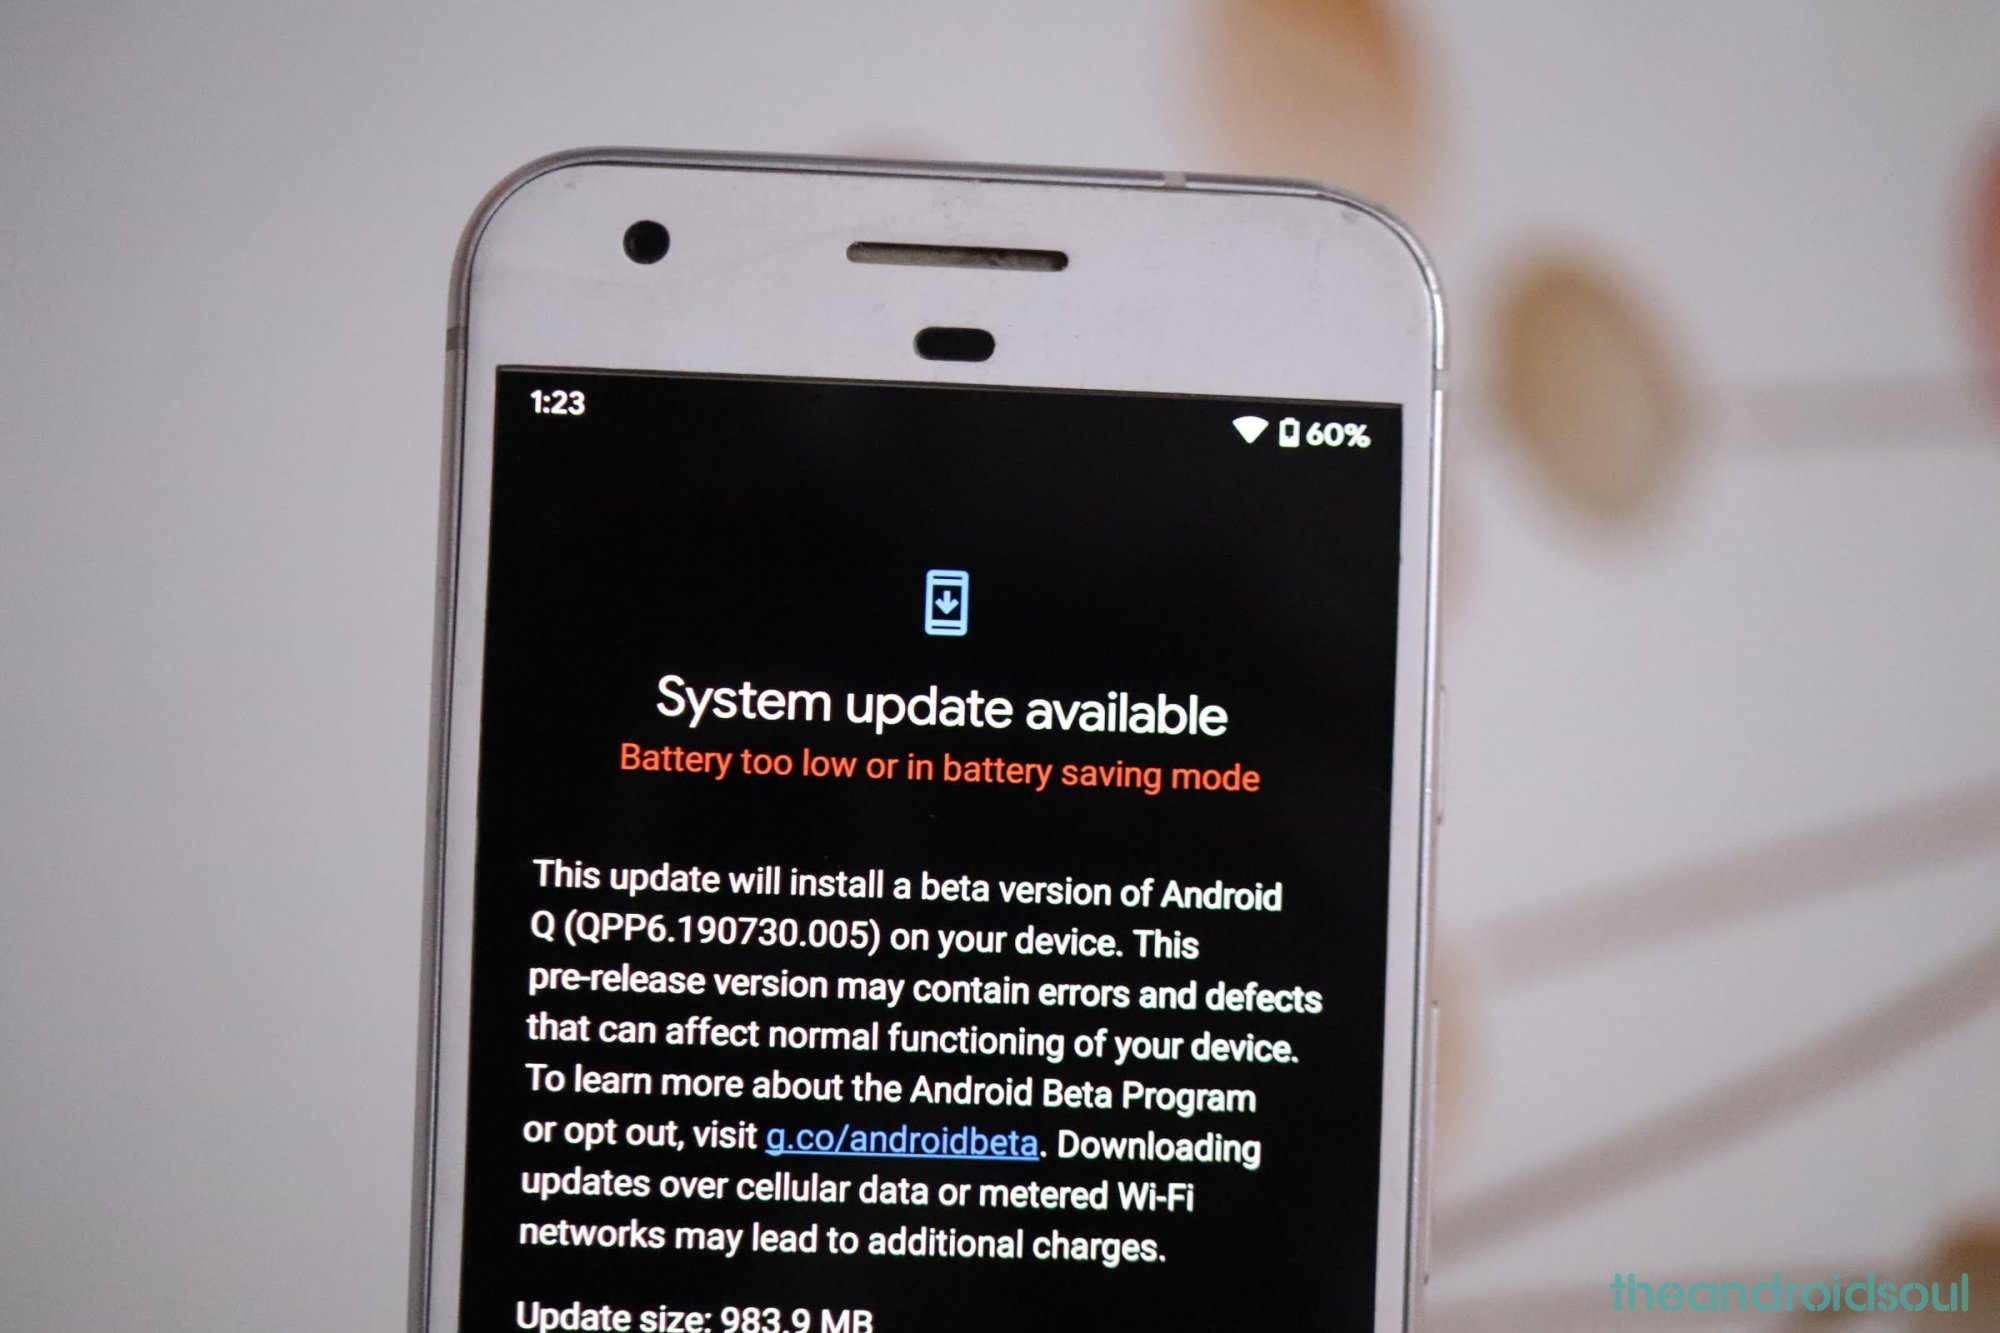 Android 10 update